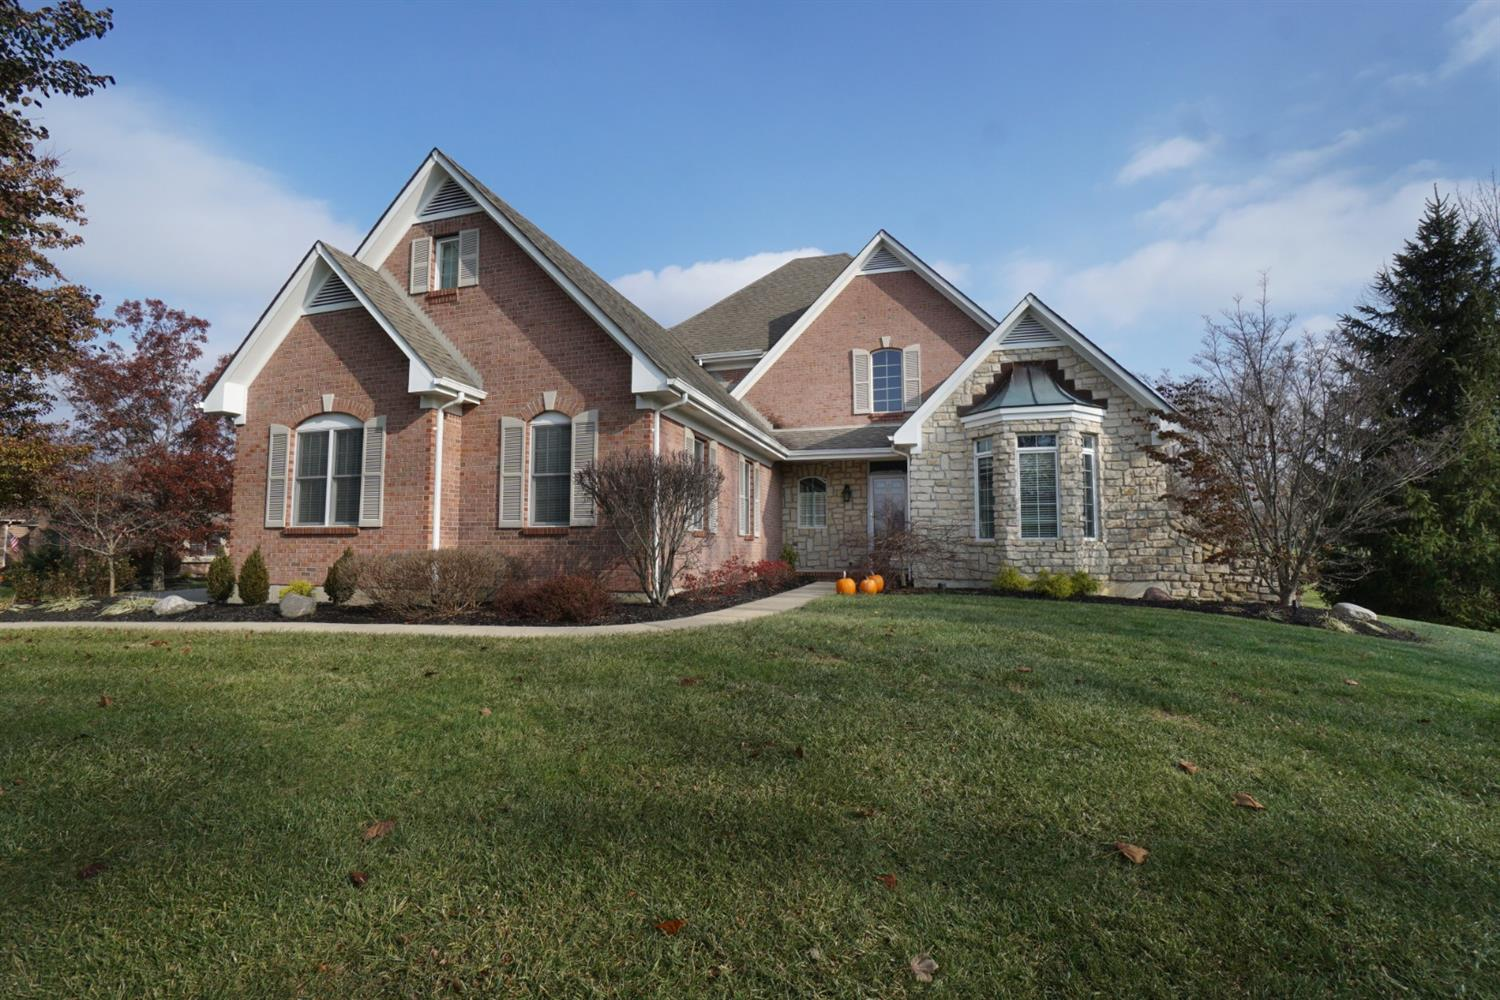 Property for sale at 472 Aspen Ridge Drive, Turtle Creek Twp,  OH 45036